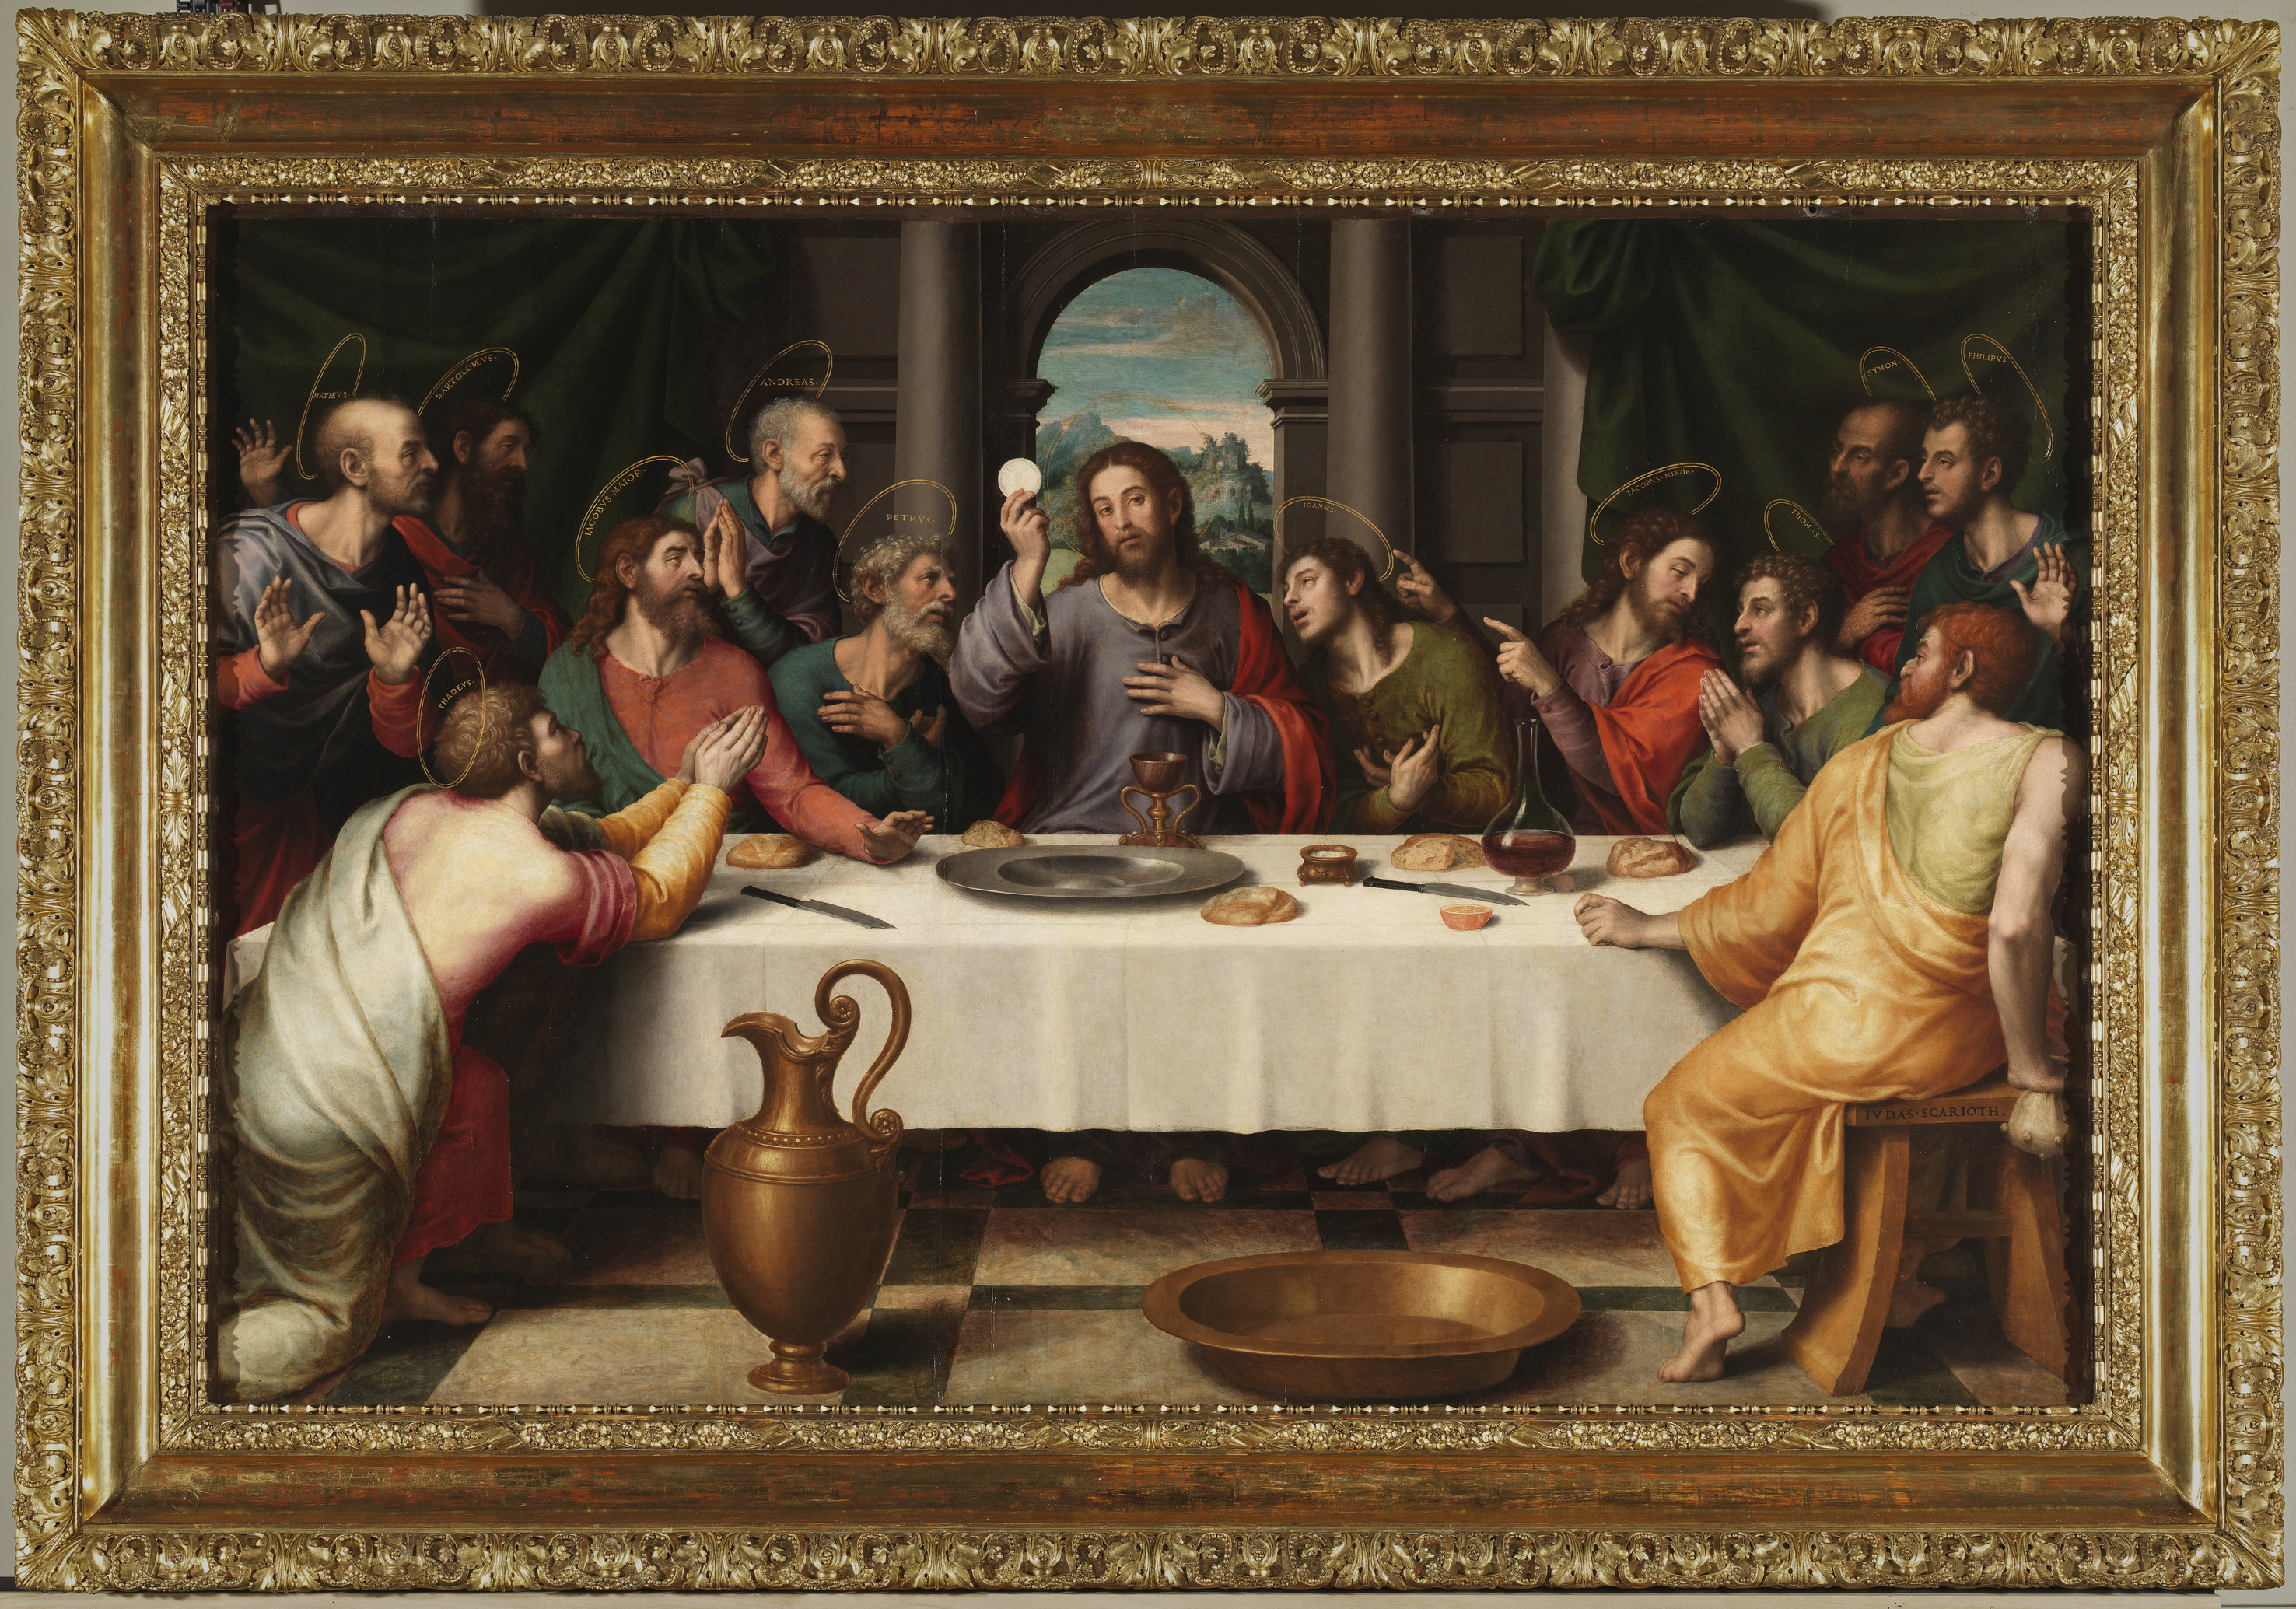 Cuadro De Leonardo Da Vinci La Ultima Cena The Last Supper Thewalkingdead